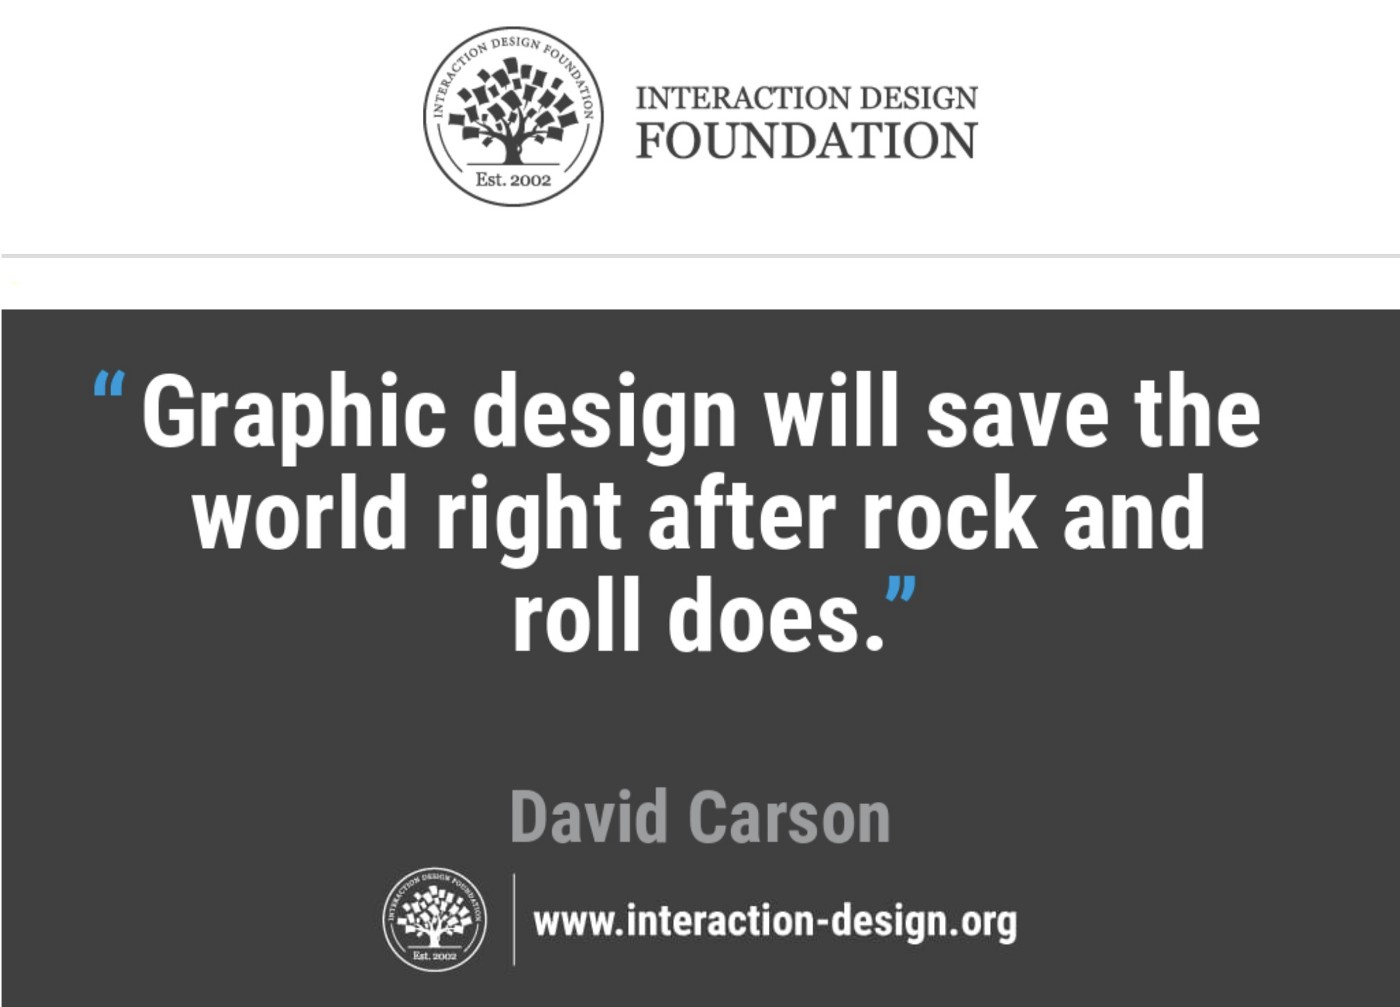 Graphic design will save the world right after rock and roll does. David Carson's quote